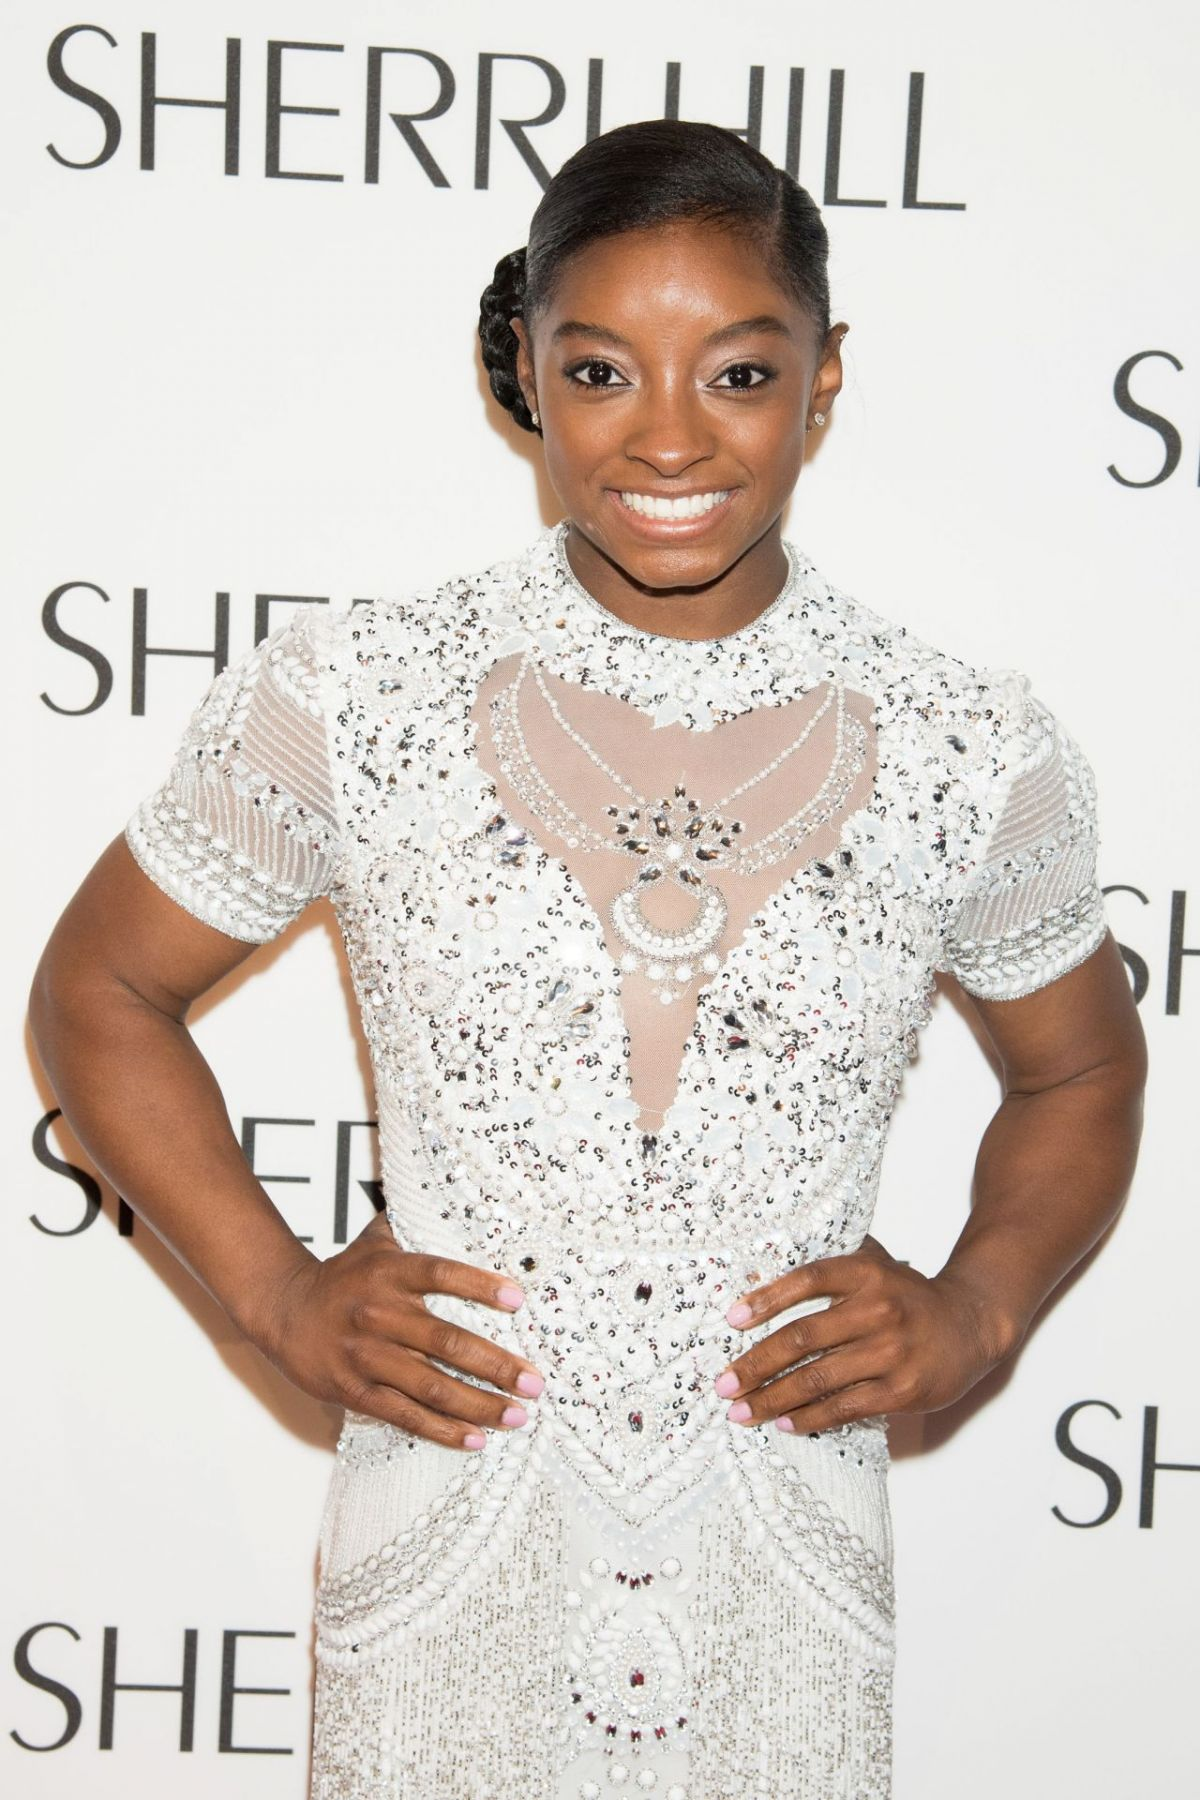 SIMONE BILES at Sherri Hill Fashion Show at New York Fashion Week 09/12/2016